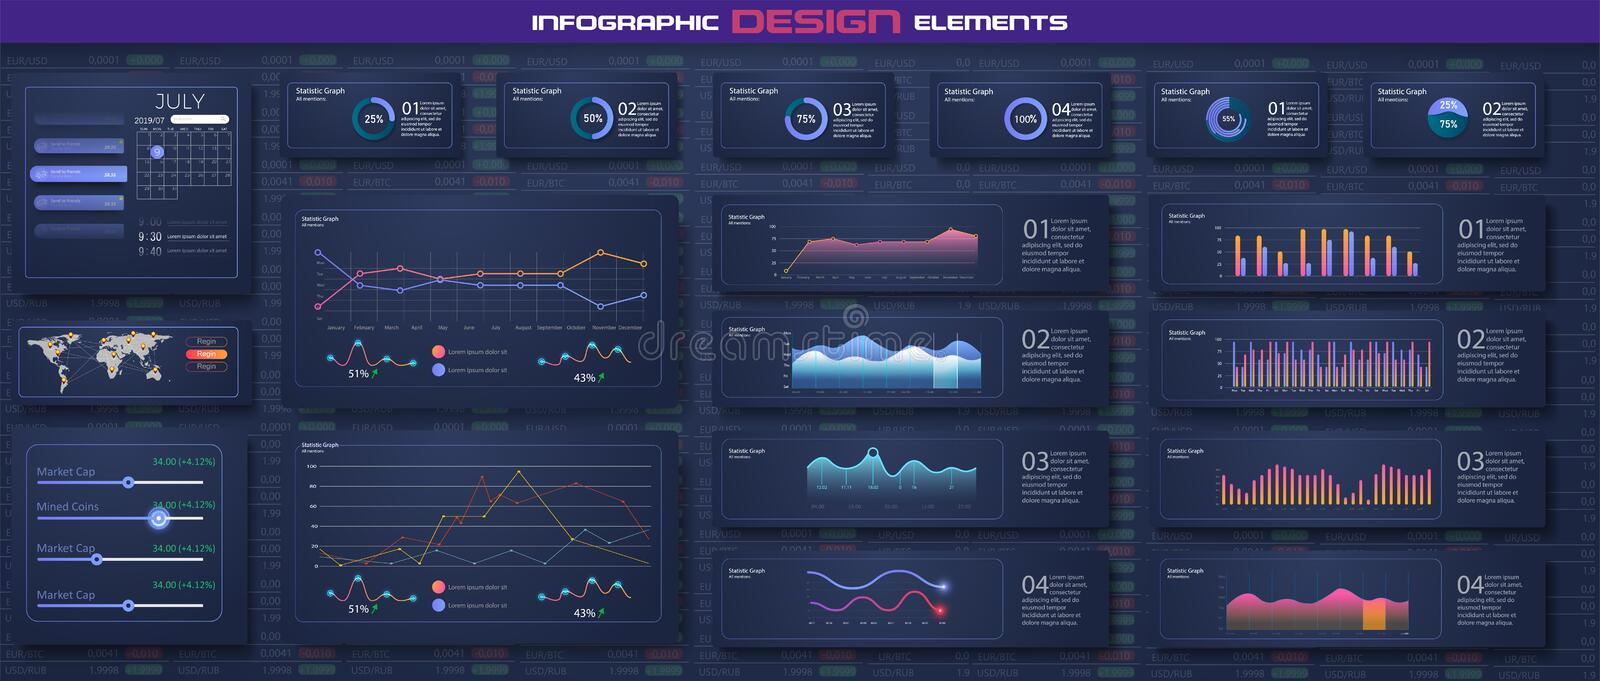 Infographic dashboard template with flat design graphs and pie charts Online statistics and data Analytics. Information Graphics vector illustration